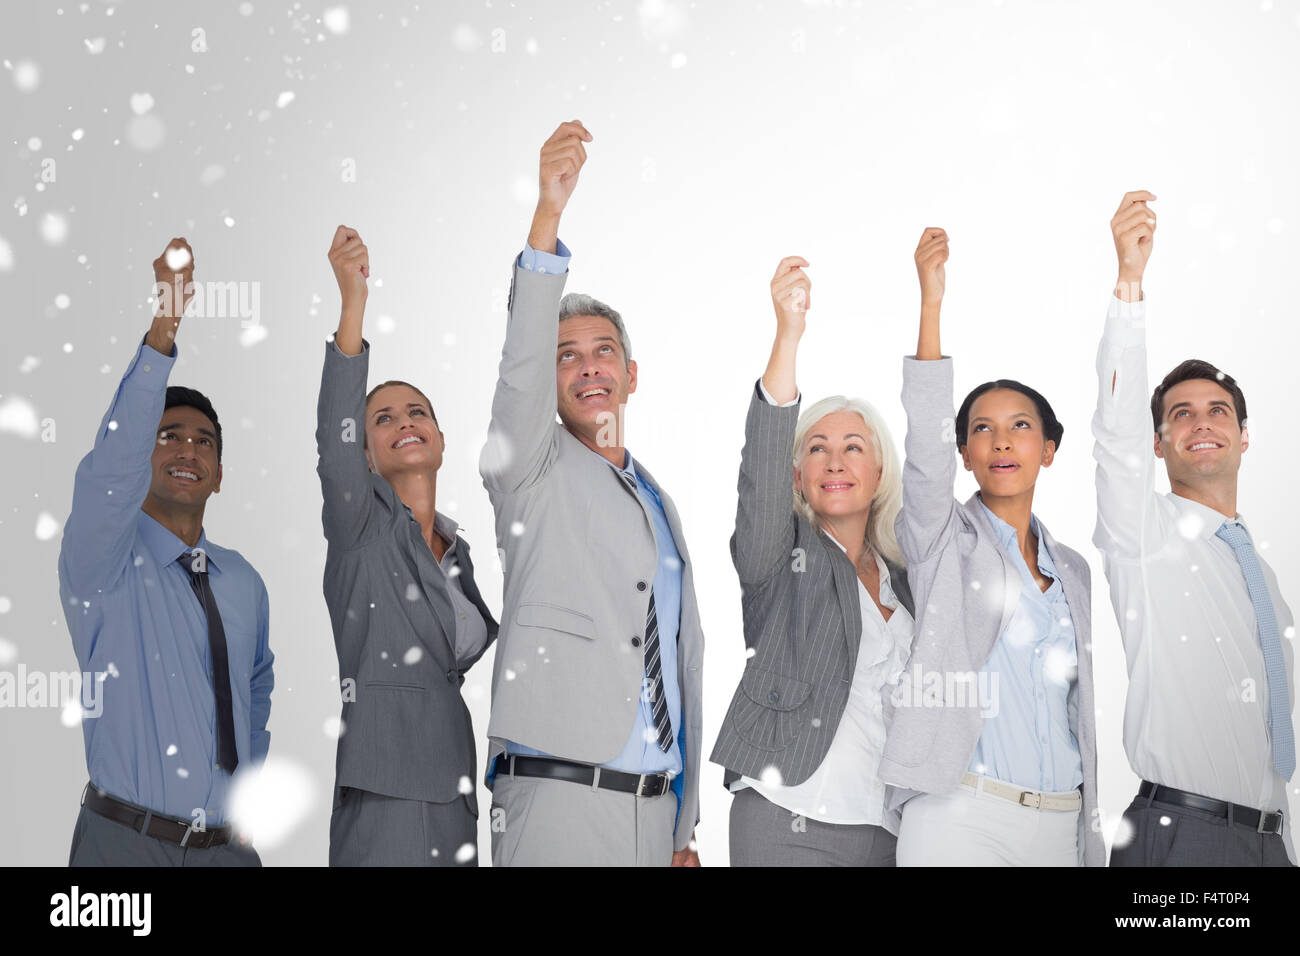 Composite image of smiling business people raising hands Stock Photo